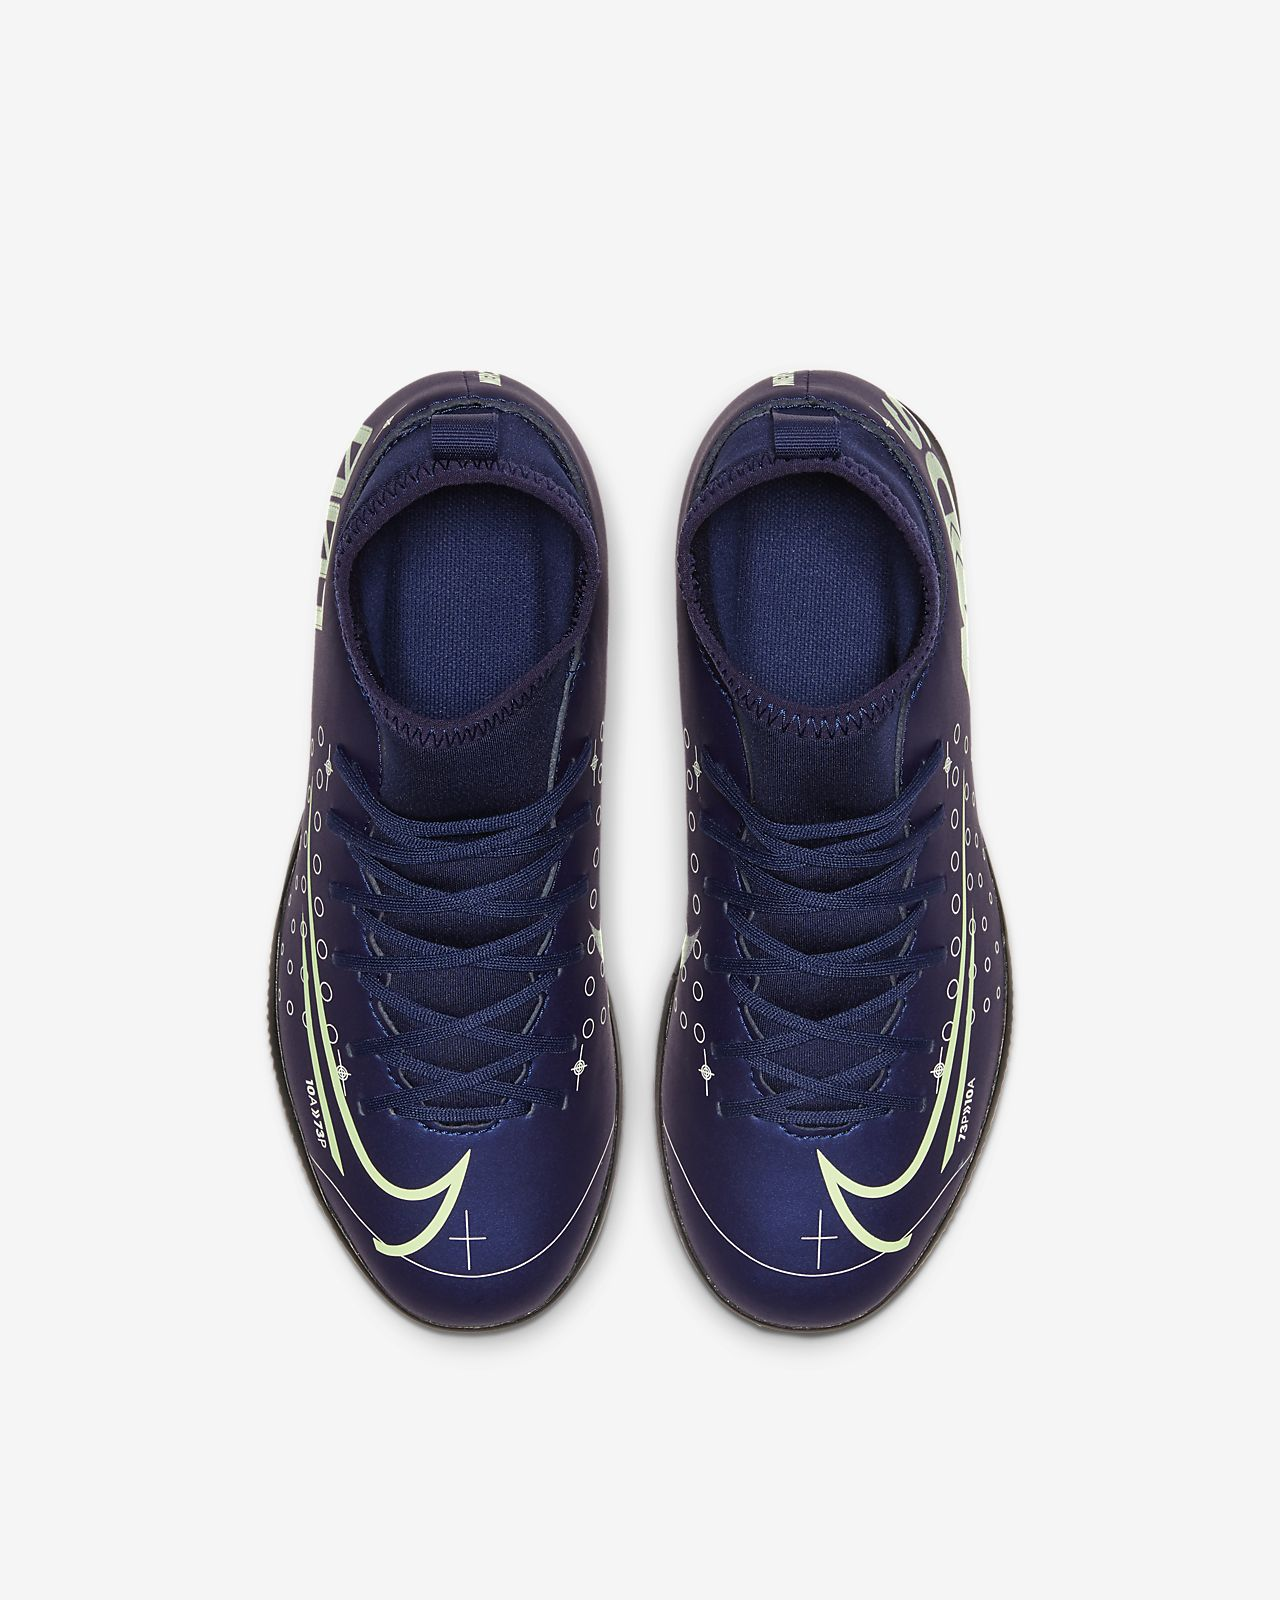 Nike Mercurial Superfly VII Academy MDS Indoor Shoes